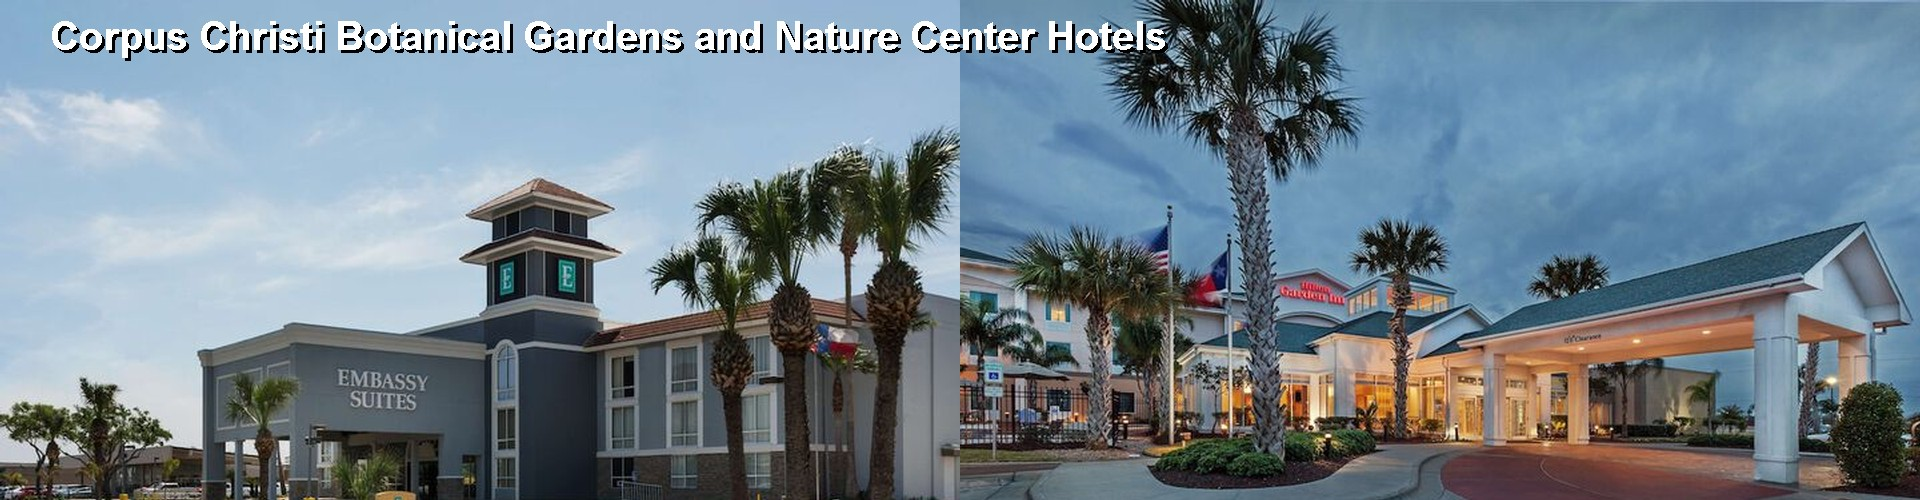 5 Best Hotels near Corpus Christi Botanical Gardens and Nature Center